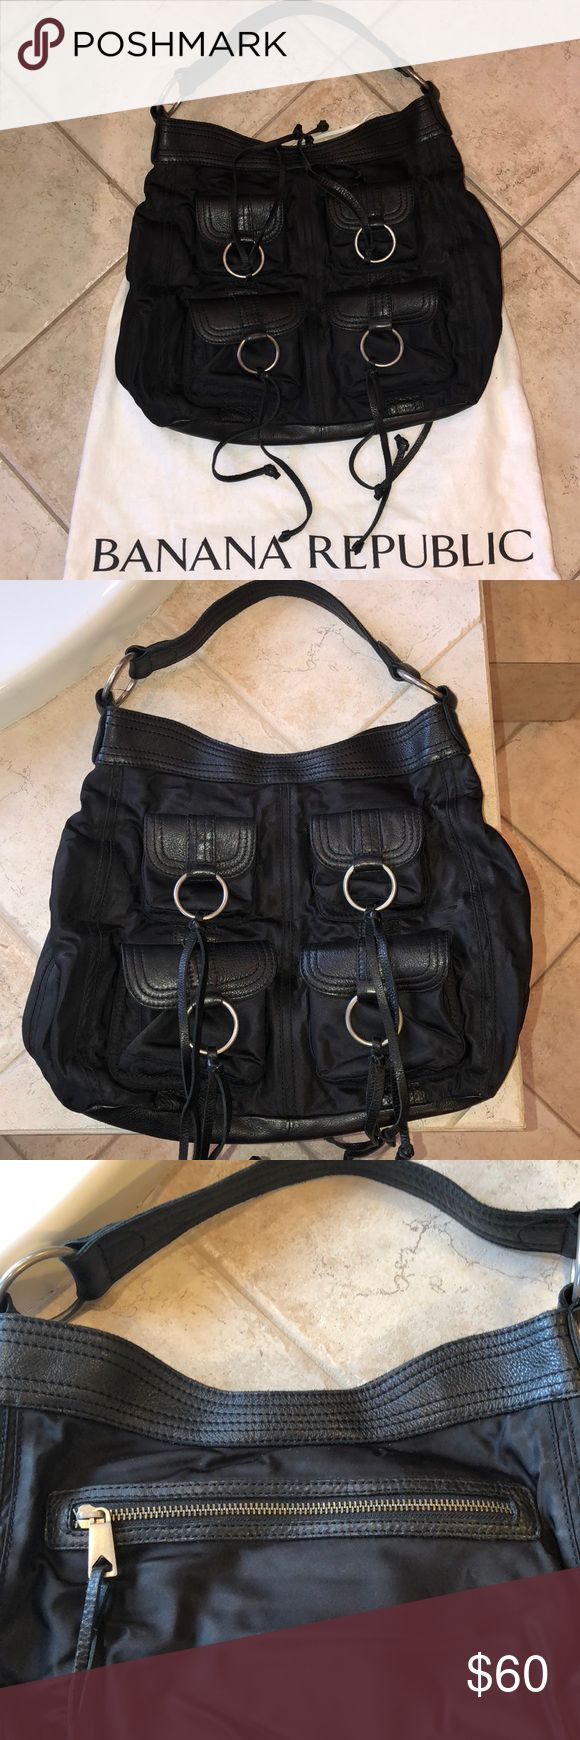 Banana Republic lightly used black hobo handbag Banana Republic black hobo style handbag. An awesome bad leather trim and silver hardware an assortment of pockets Banana Republic Bags Hobos